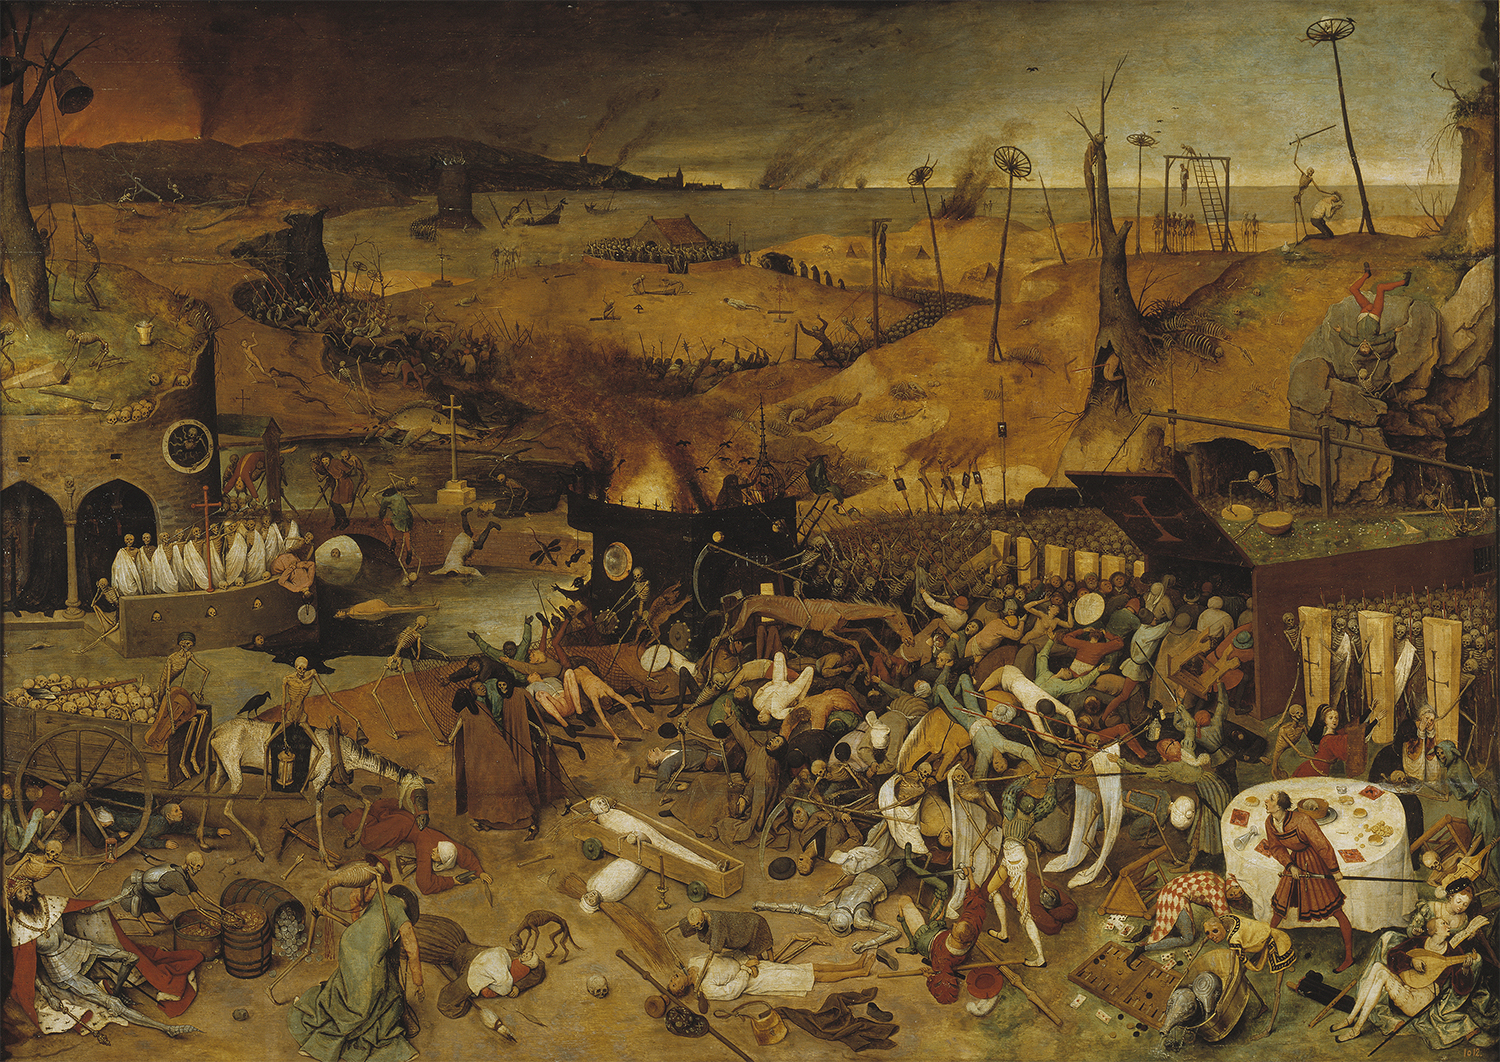 Fig. 2: A scene from The Trimuph of Death. Pieter Bruegel the Elder, 1562.